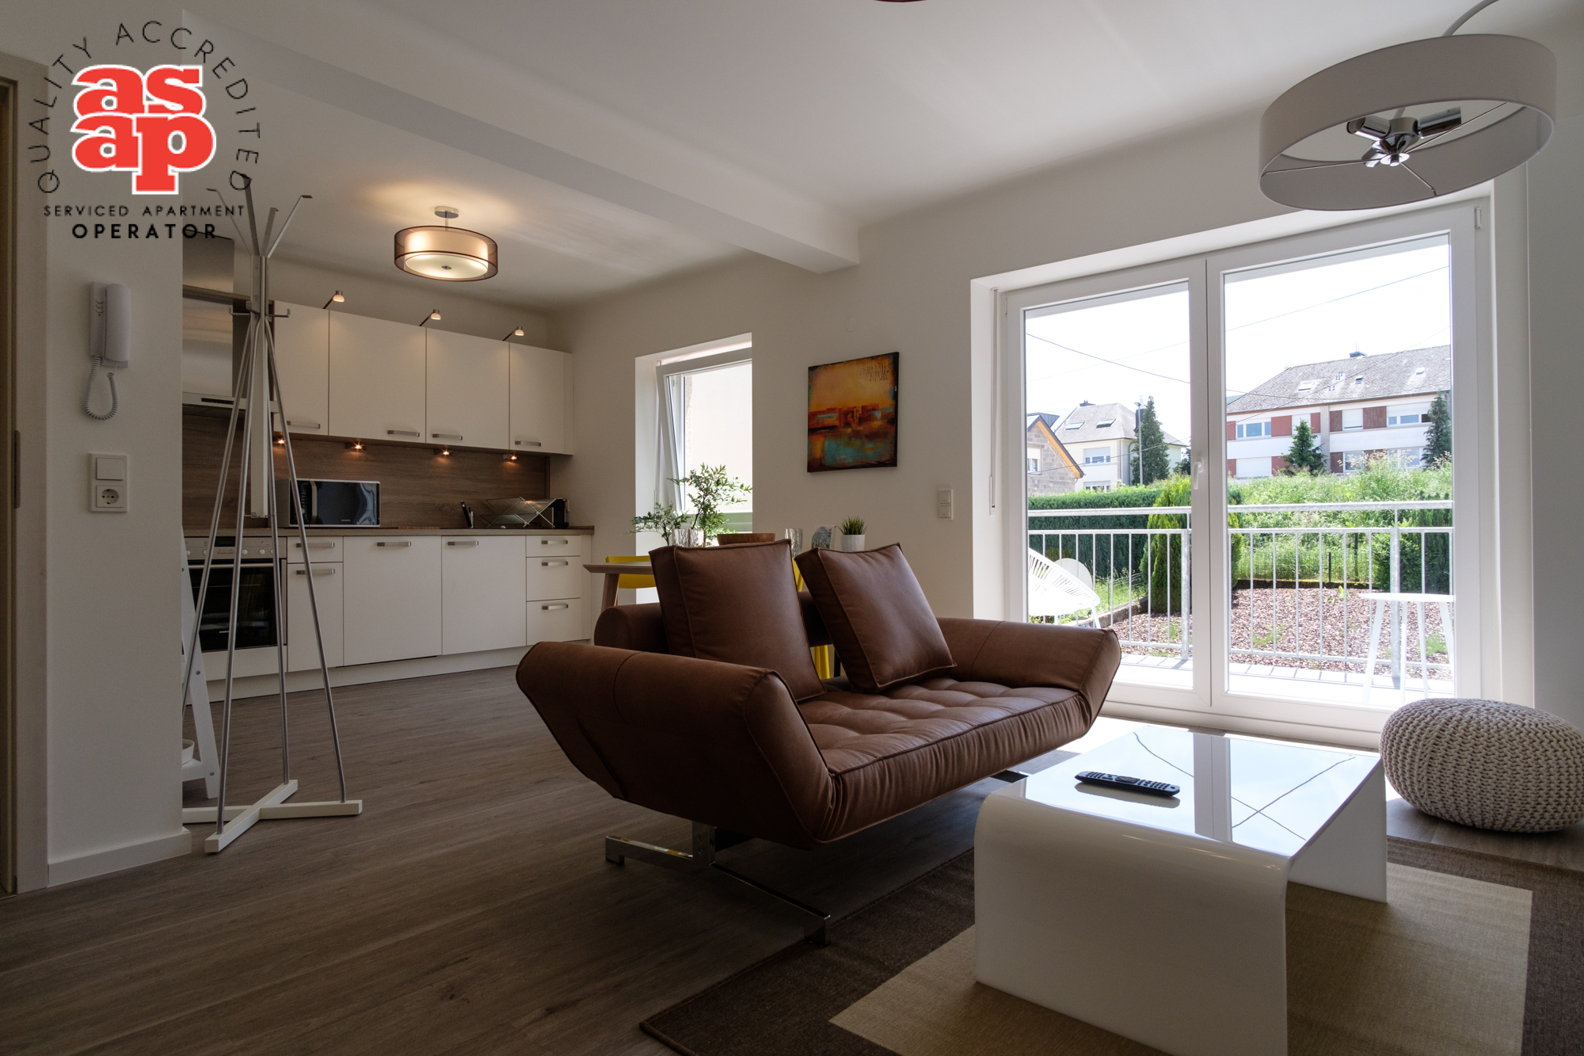 Image of a Dwellworks serviced apartment in Luxembourg